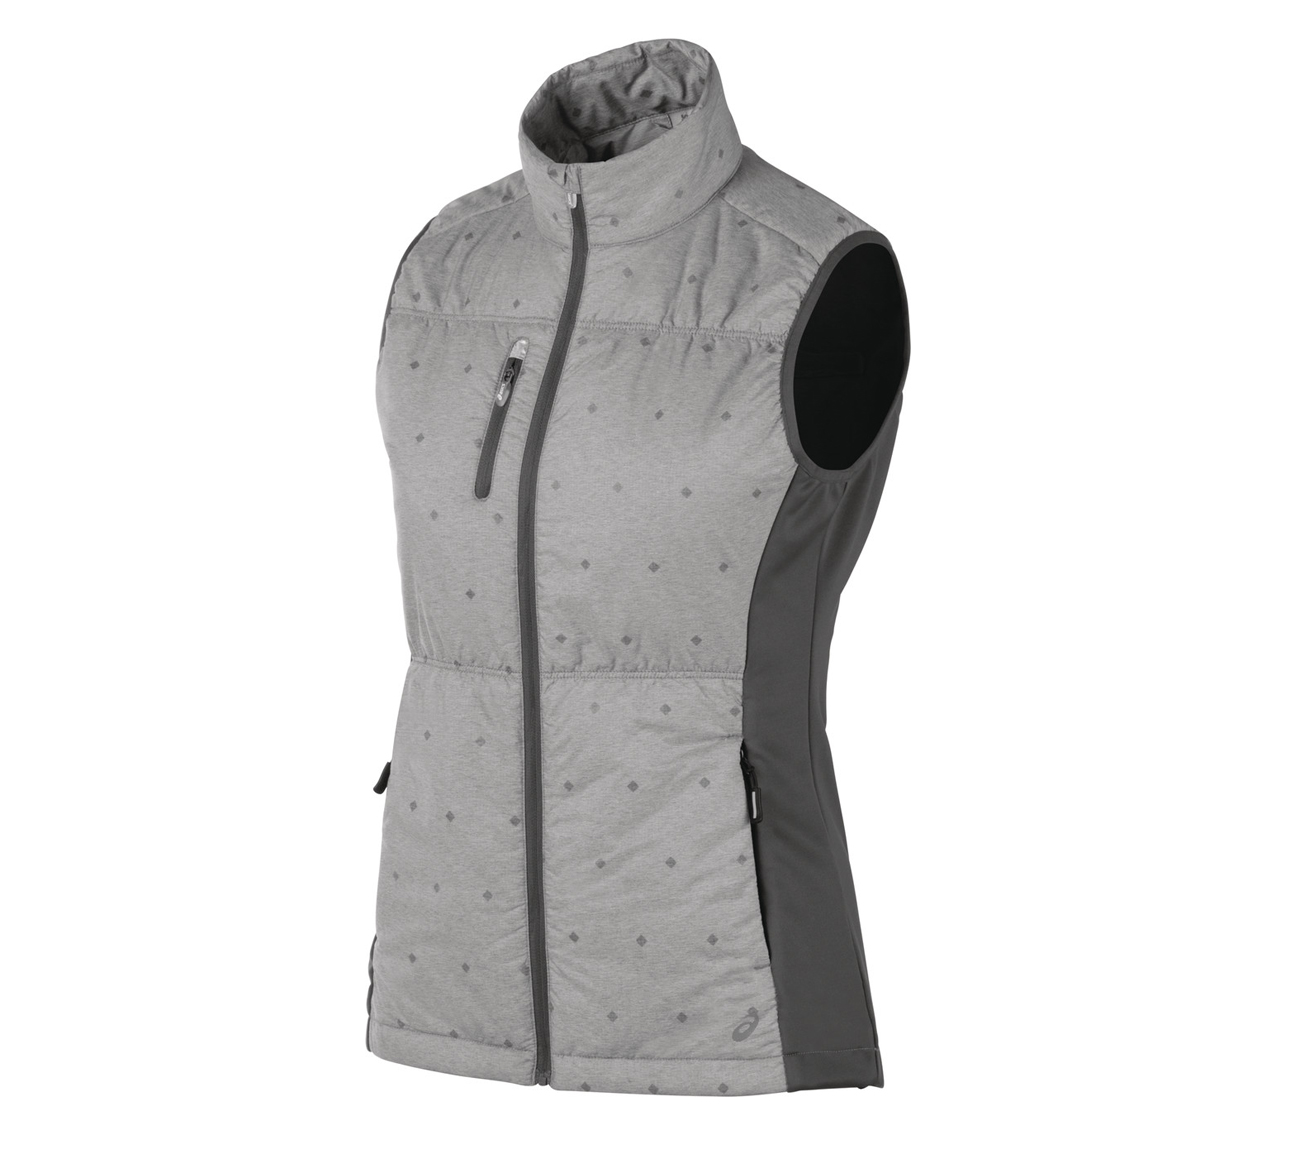 Asics Puff Vest Gear We Love - Cold Weather Running